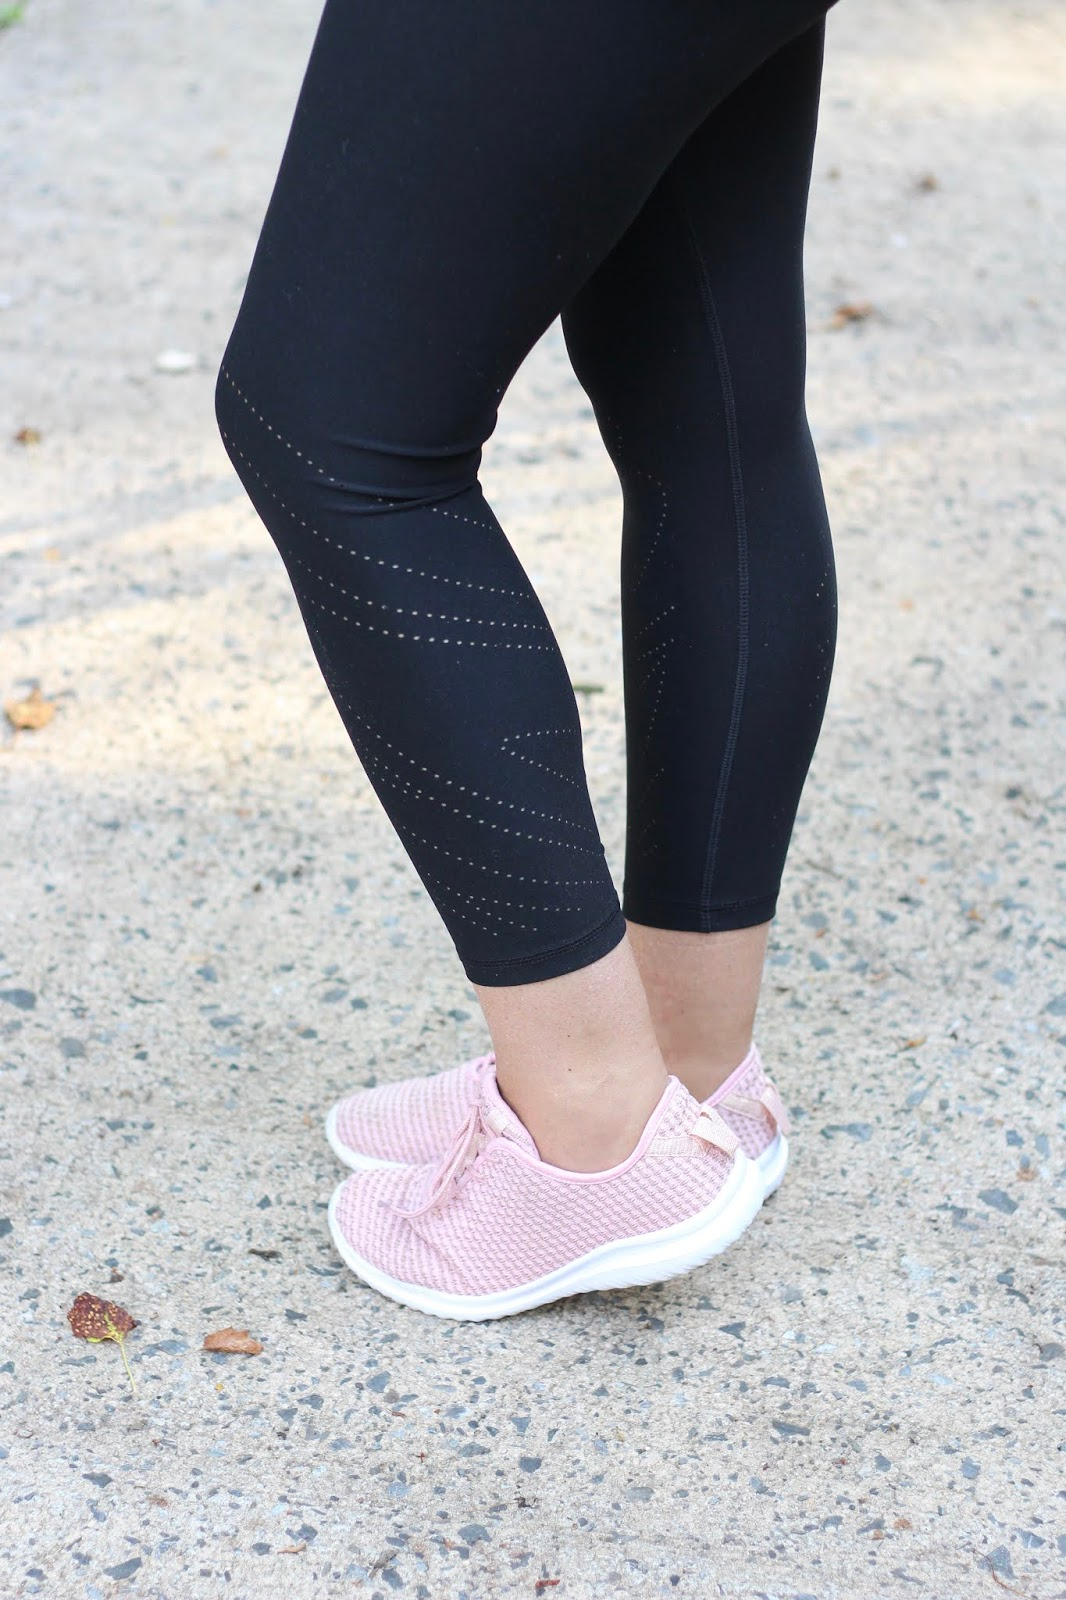 5 Reasons I (Still) Wear Those Leggings, Even In The Summer